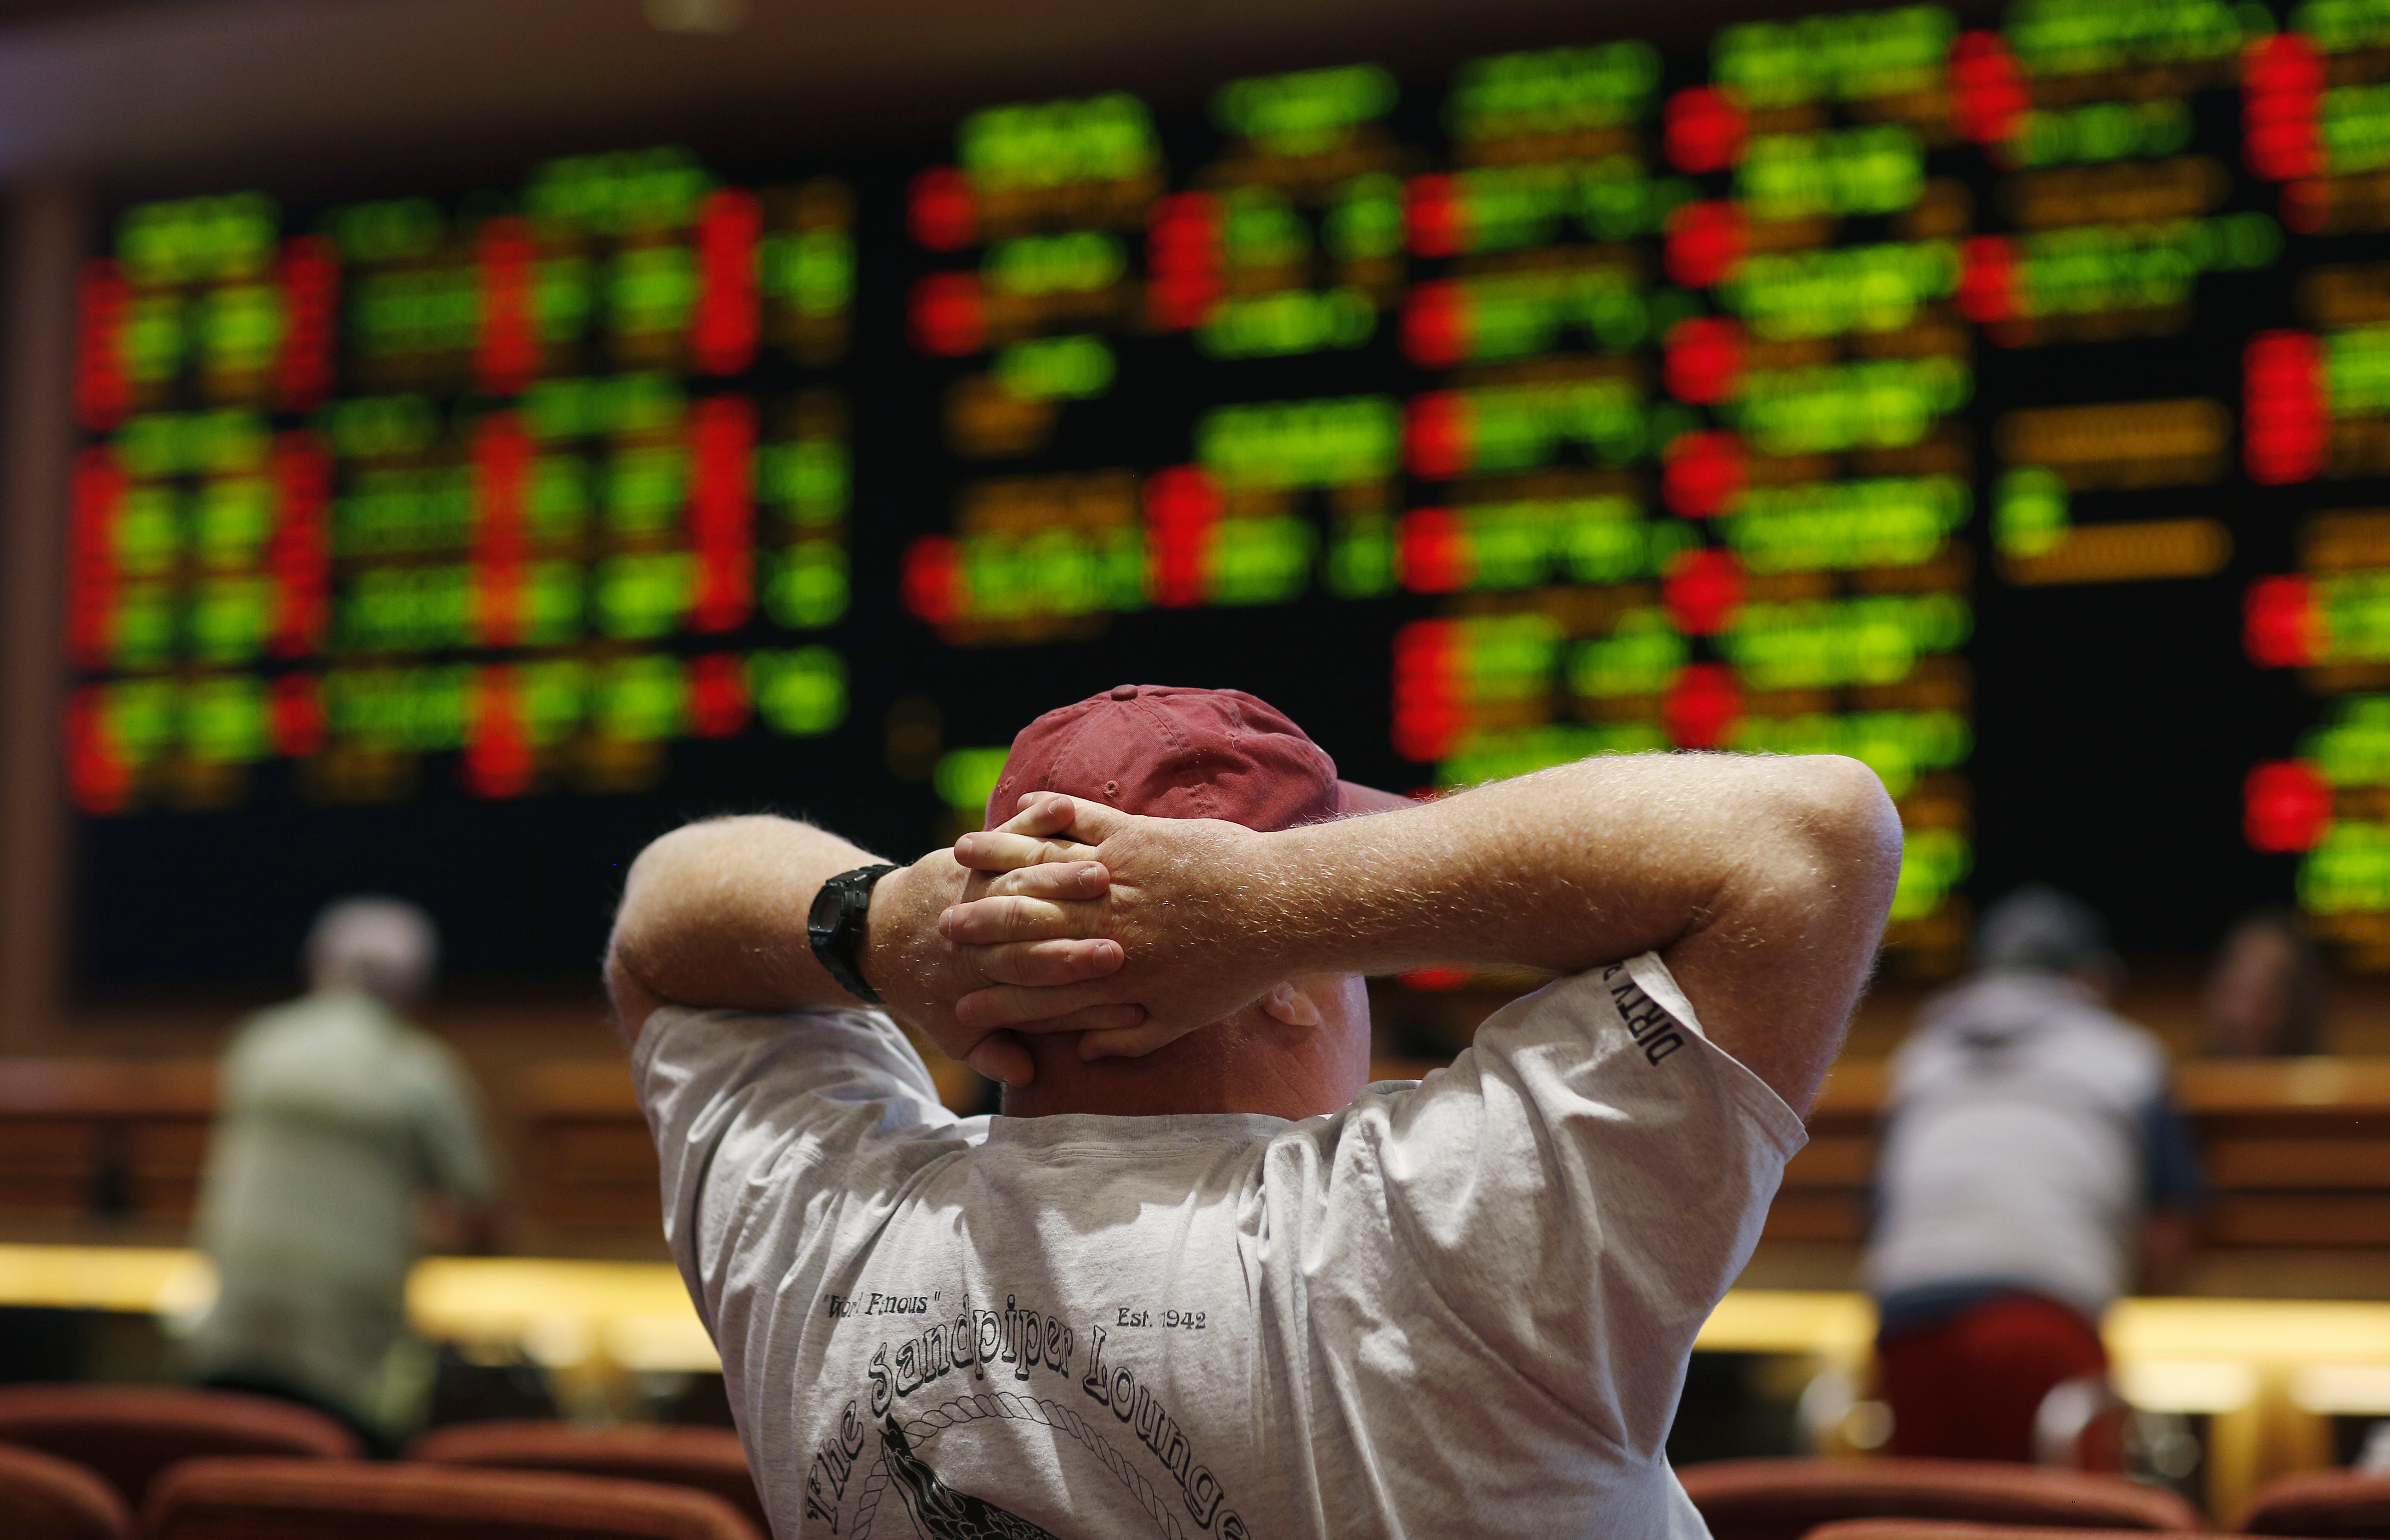 <p>A man watches a baseball game in the sports book at the South Point hotel-casino, Monday, May 14, 2018, in Las Vegas. The Supreme Court on Monday gave its go-ahead for states to allow gambling on sports across the nation.</p>